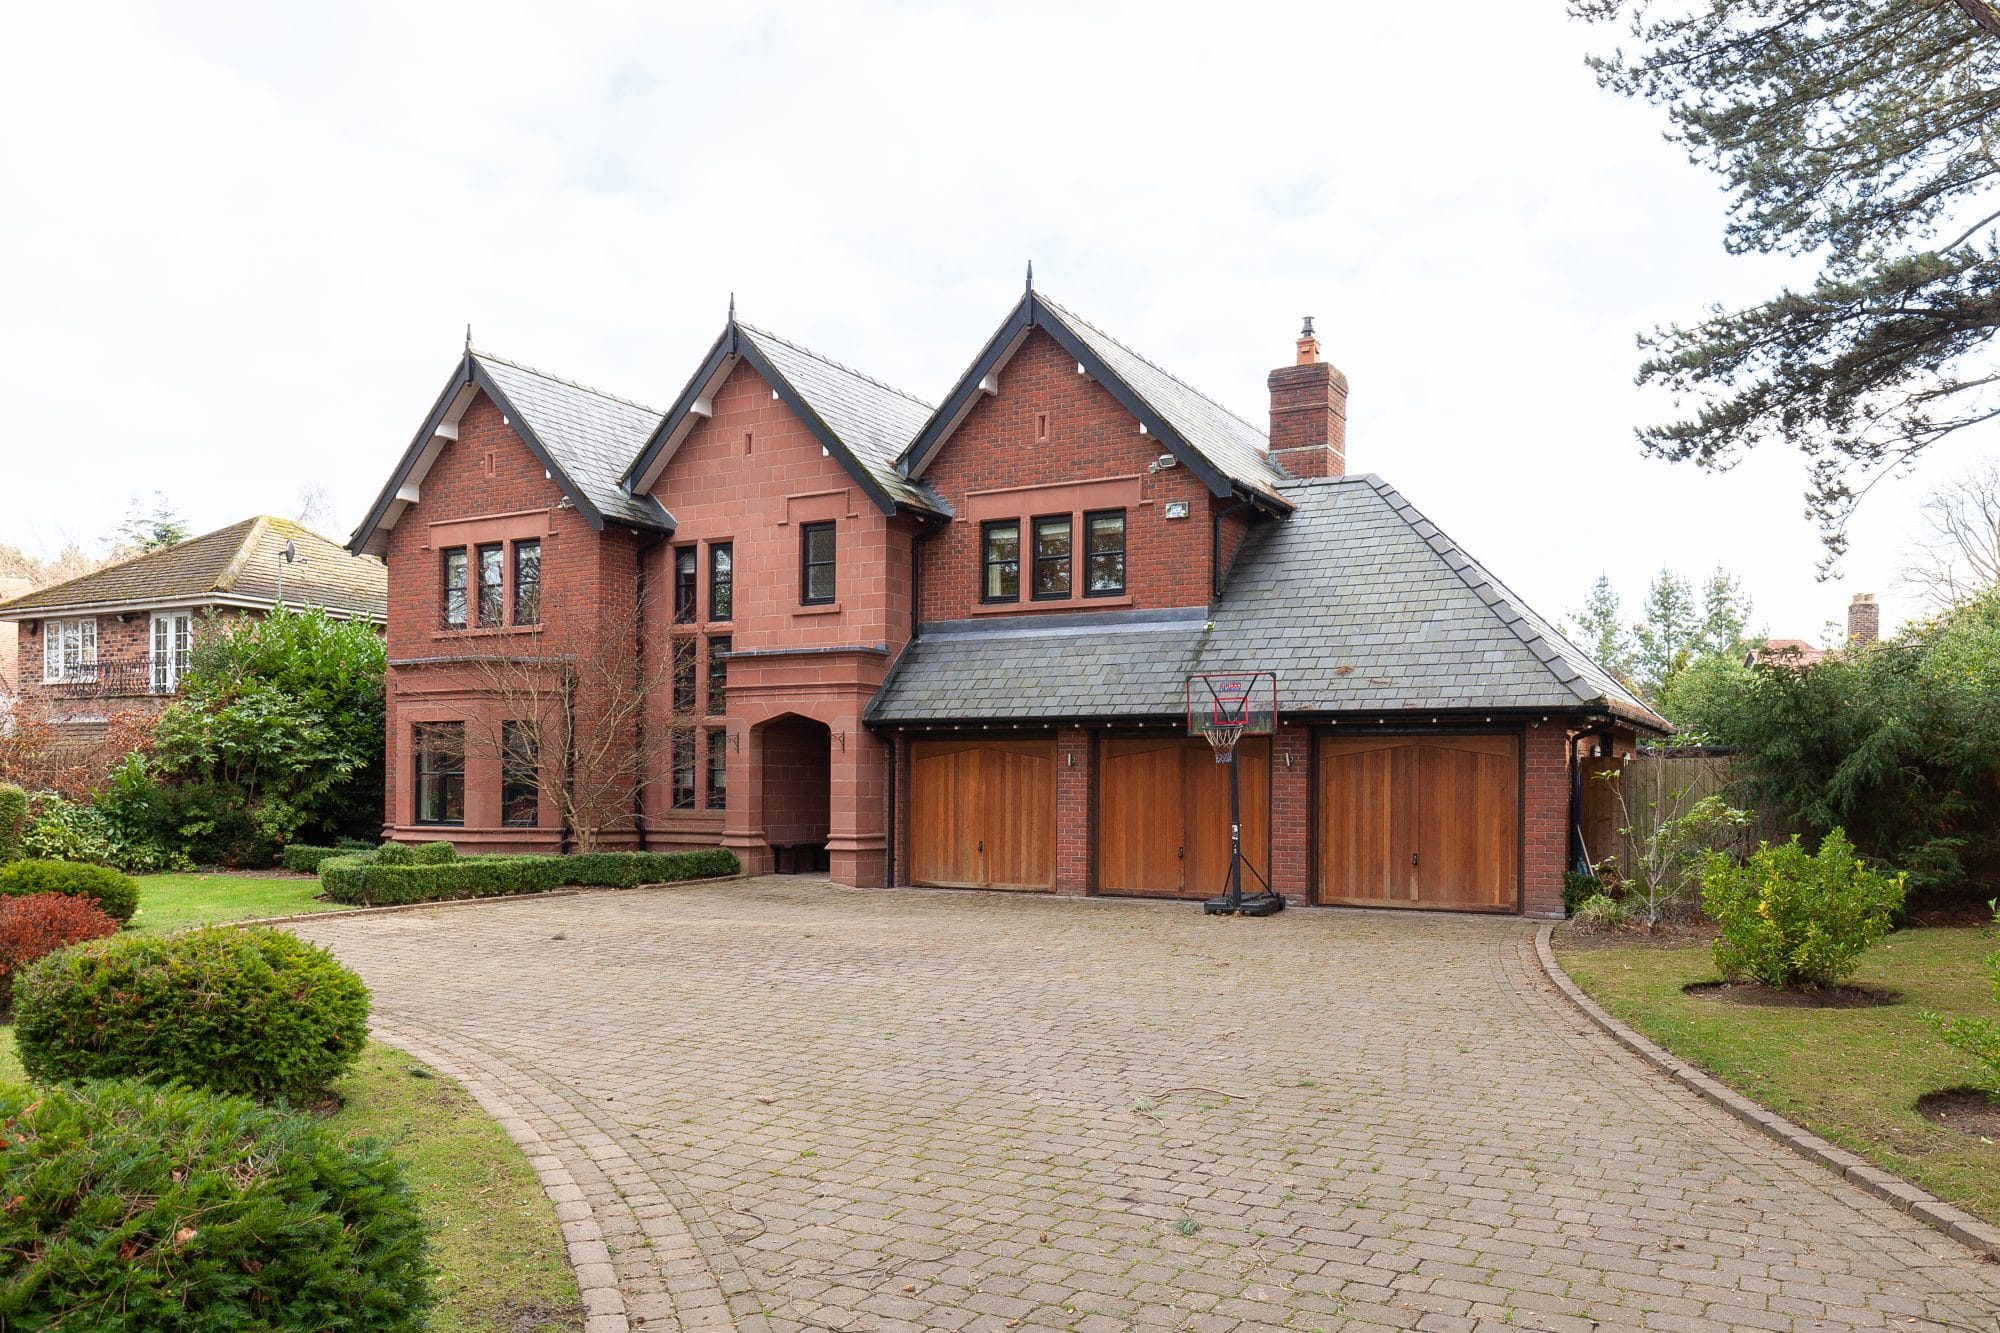 Park House, Wilmslow Park South, Wilmslow